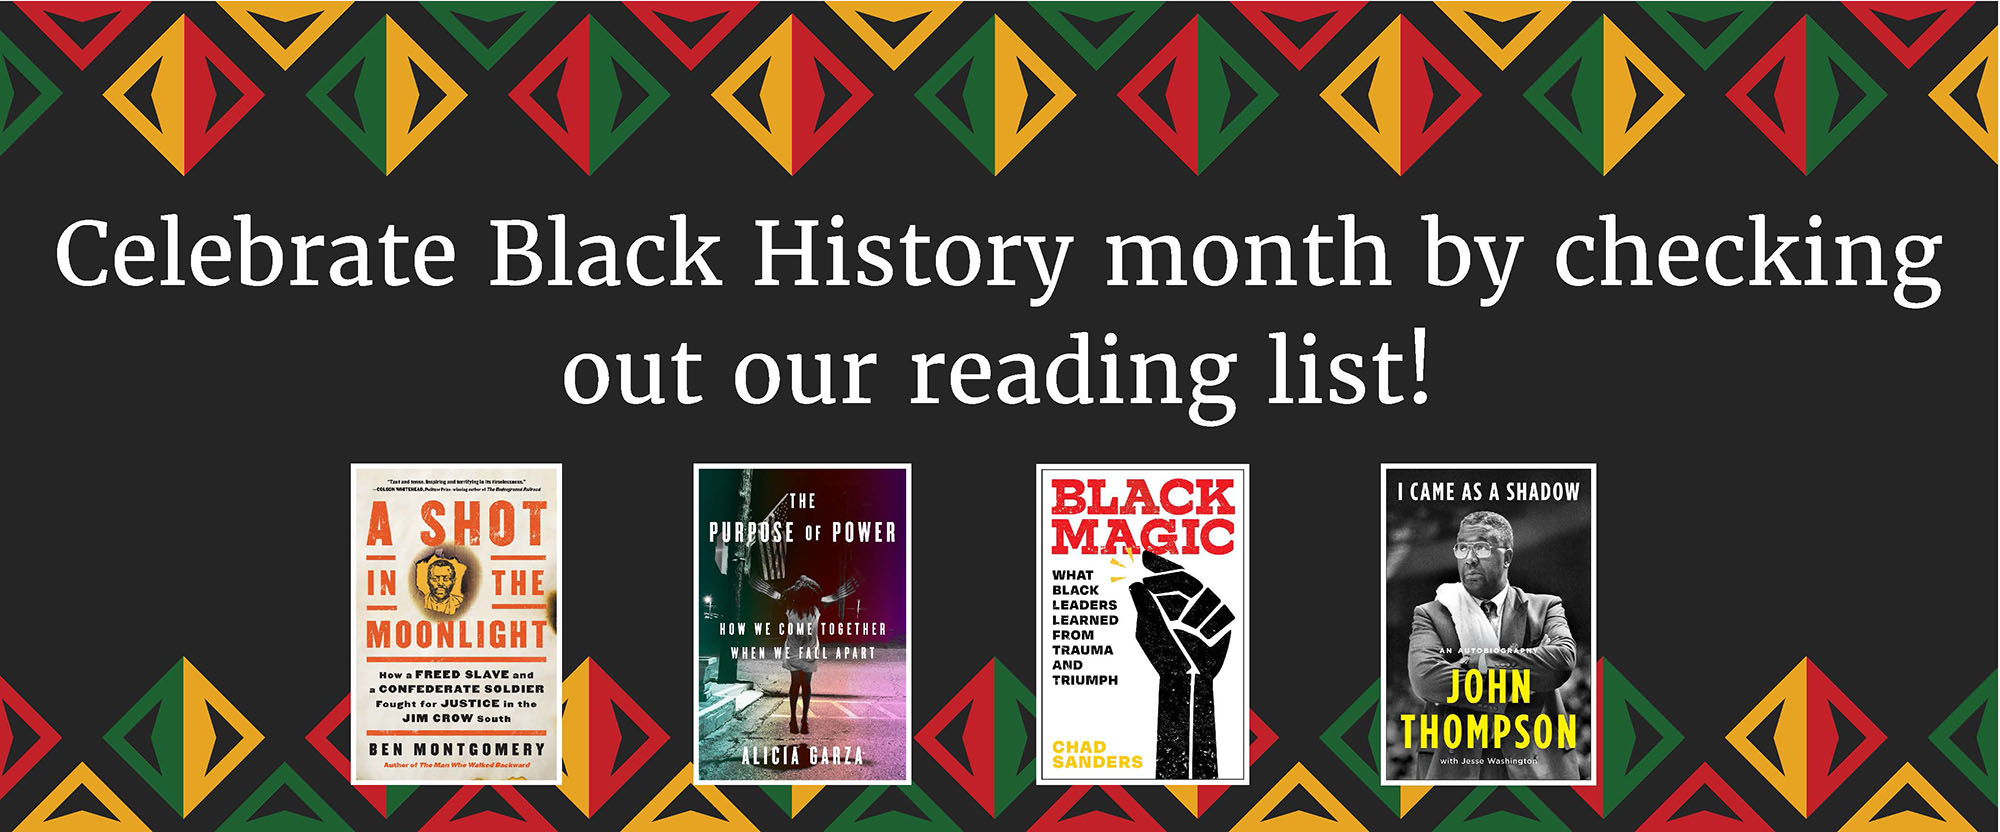 celebrate black history month with our reading list